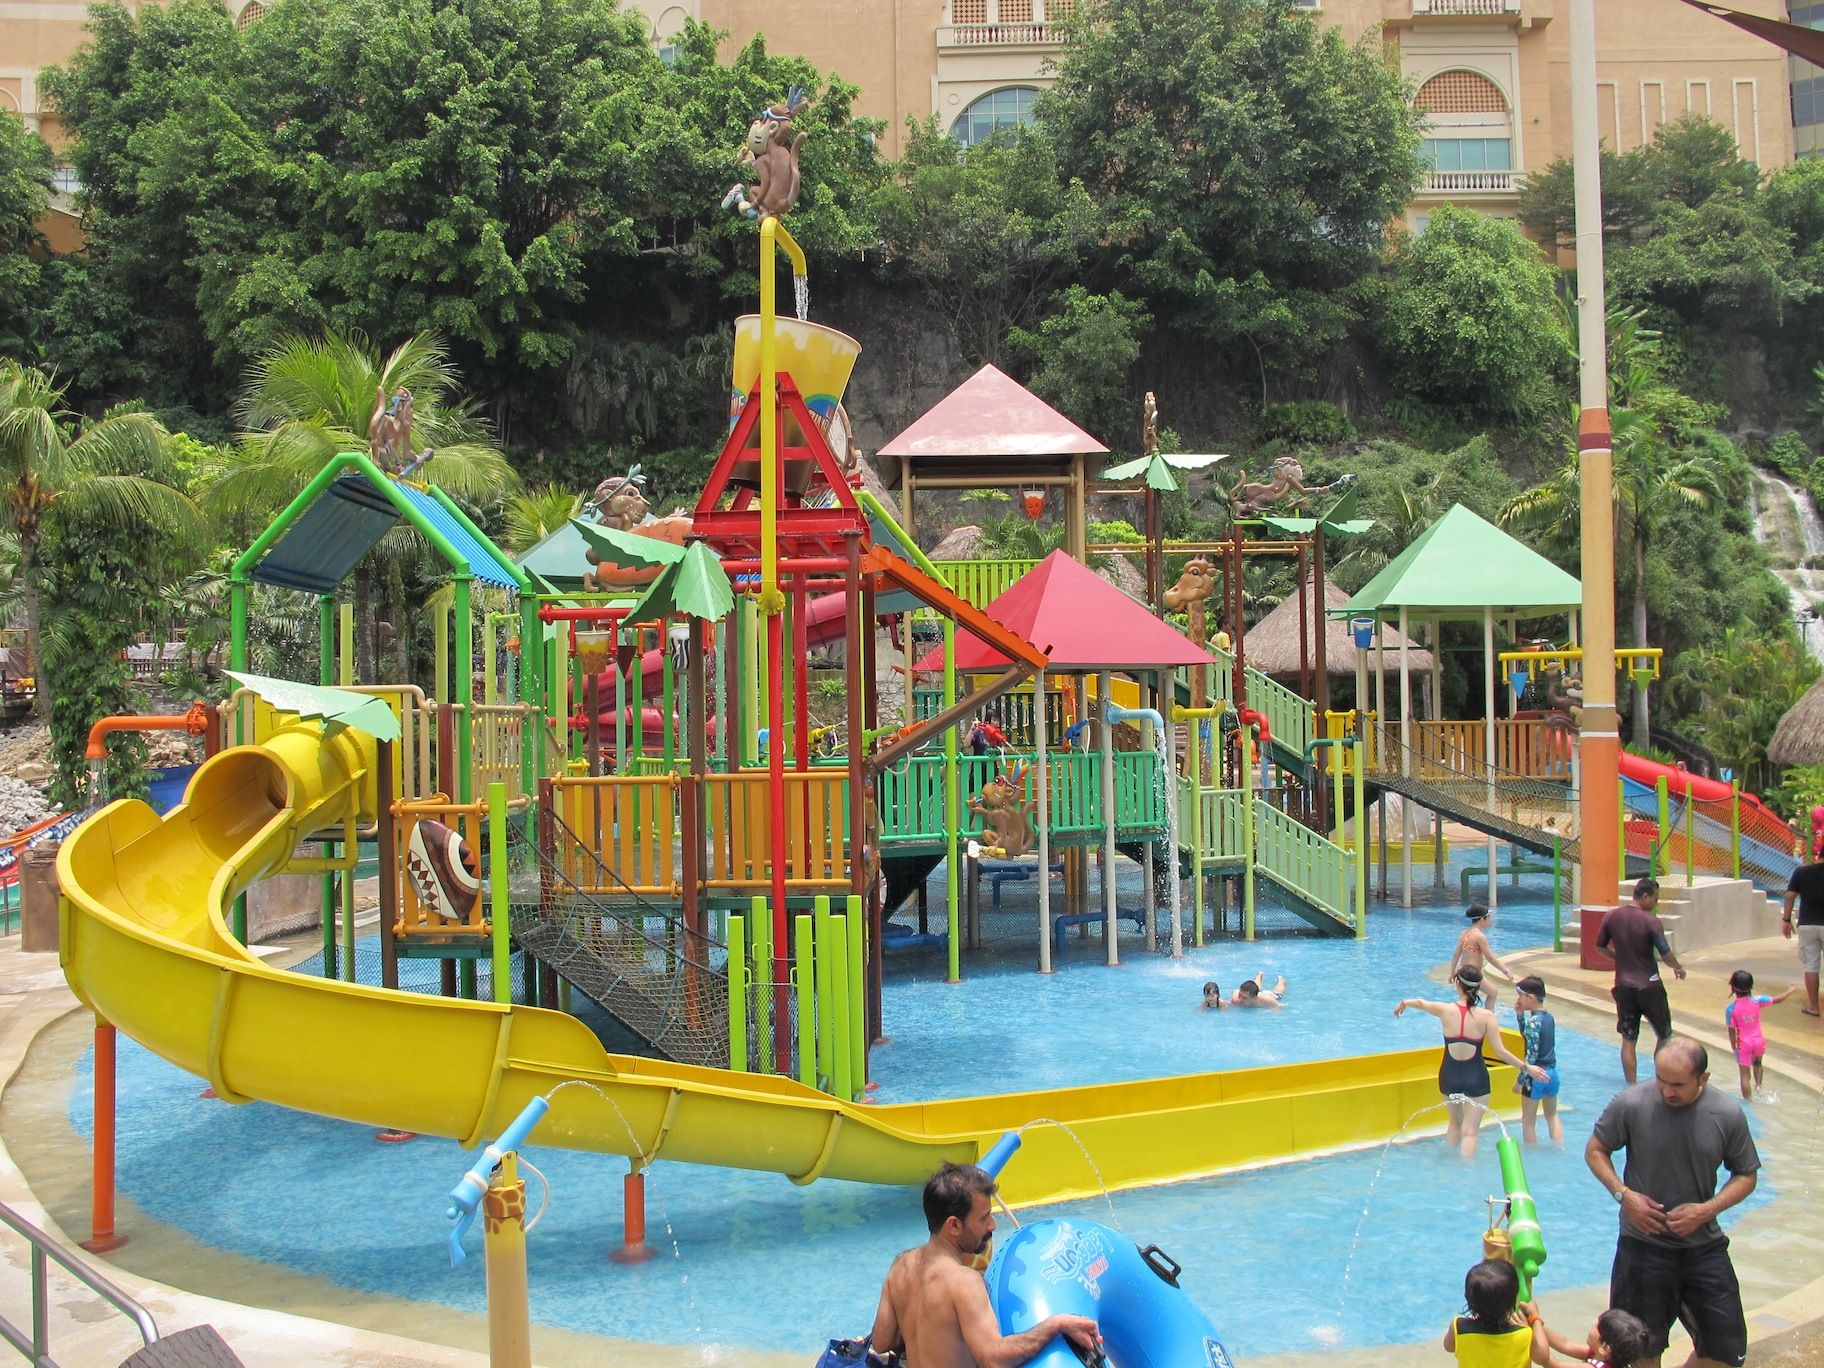 Sunway lagoon kids swimming pool malaysia pinterest for Kids swimming pool